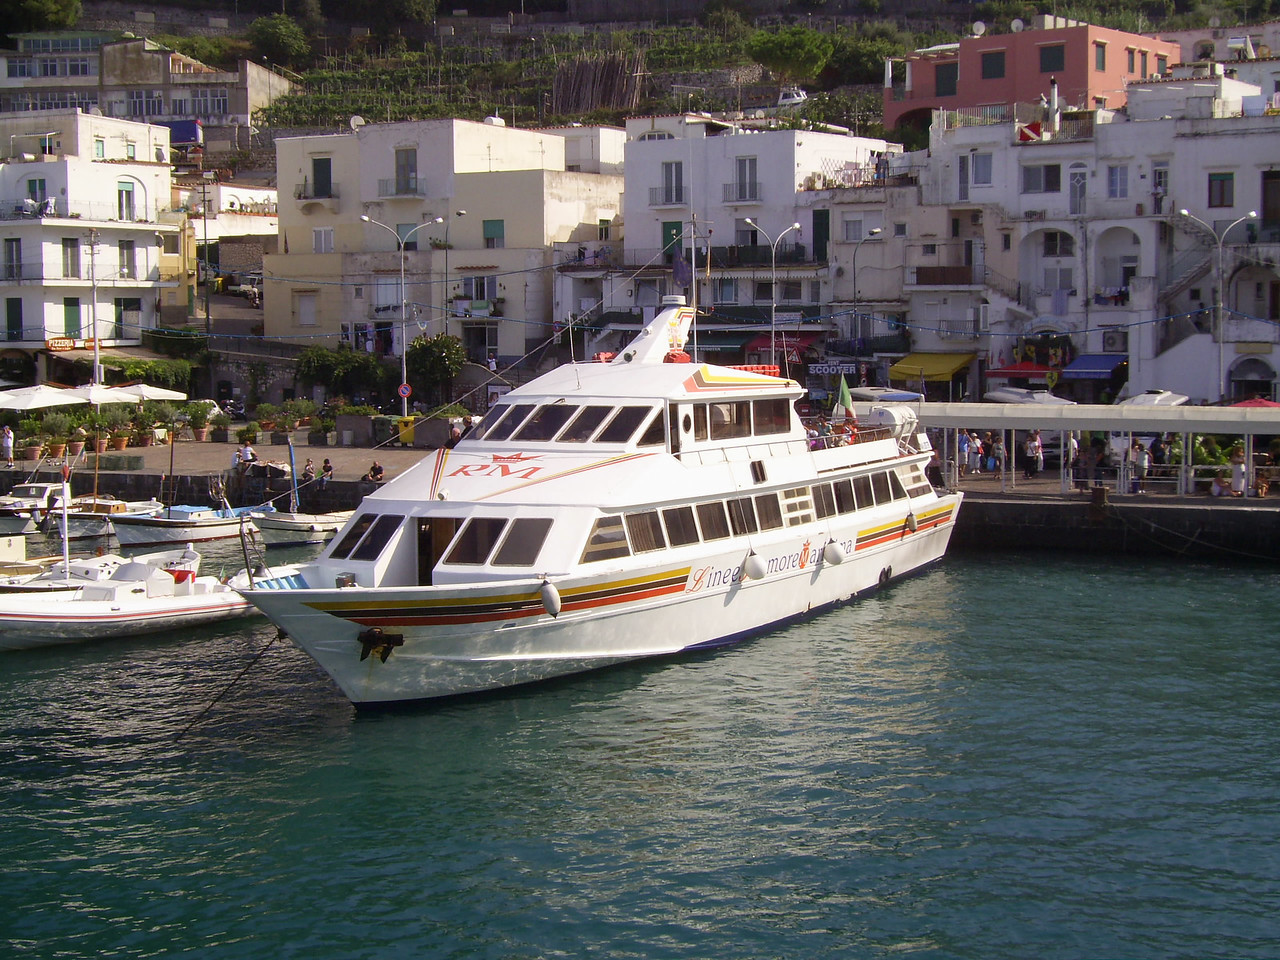 2010 - M/V ISCHIA PRONCESS in Capri.